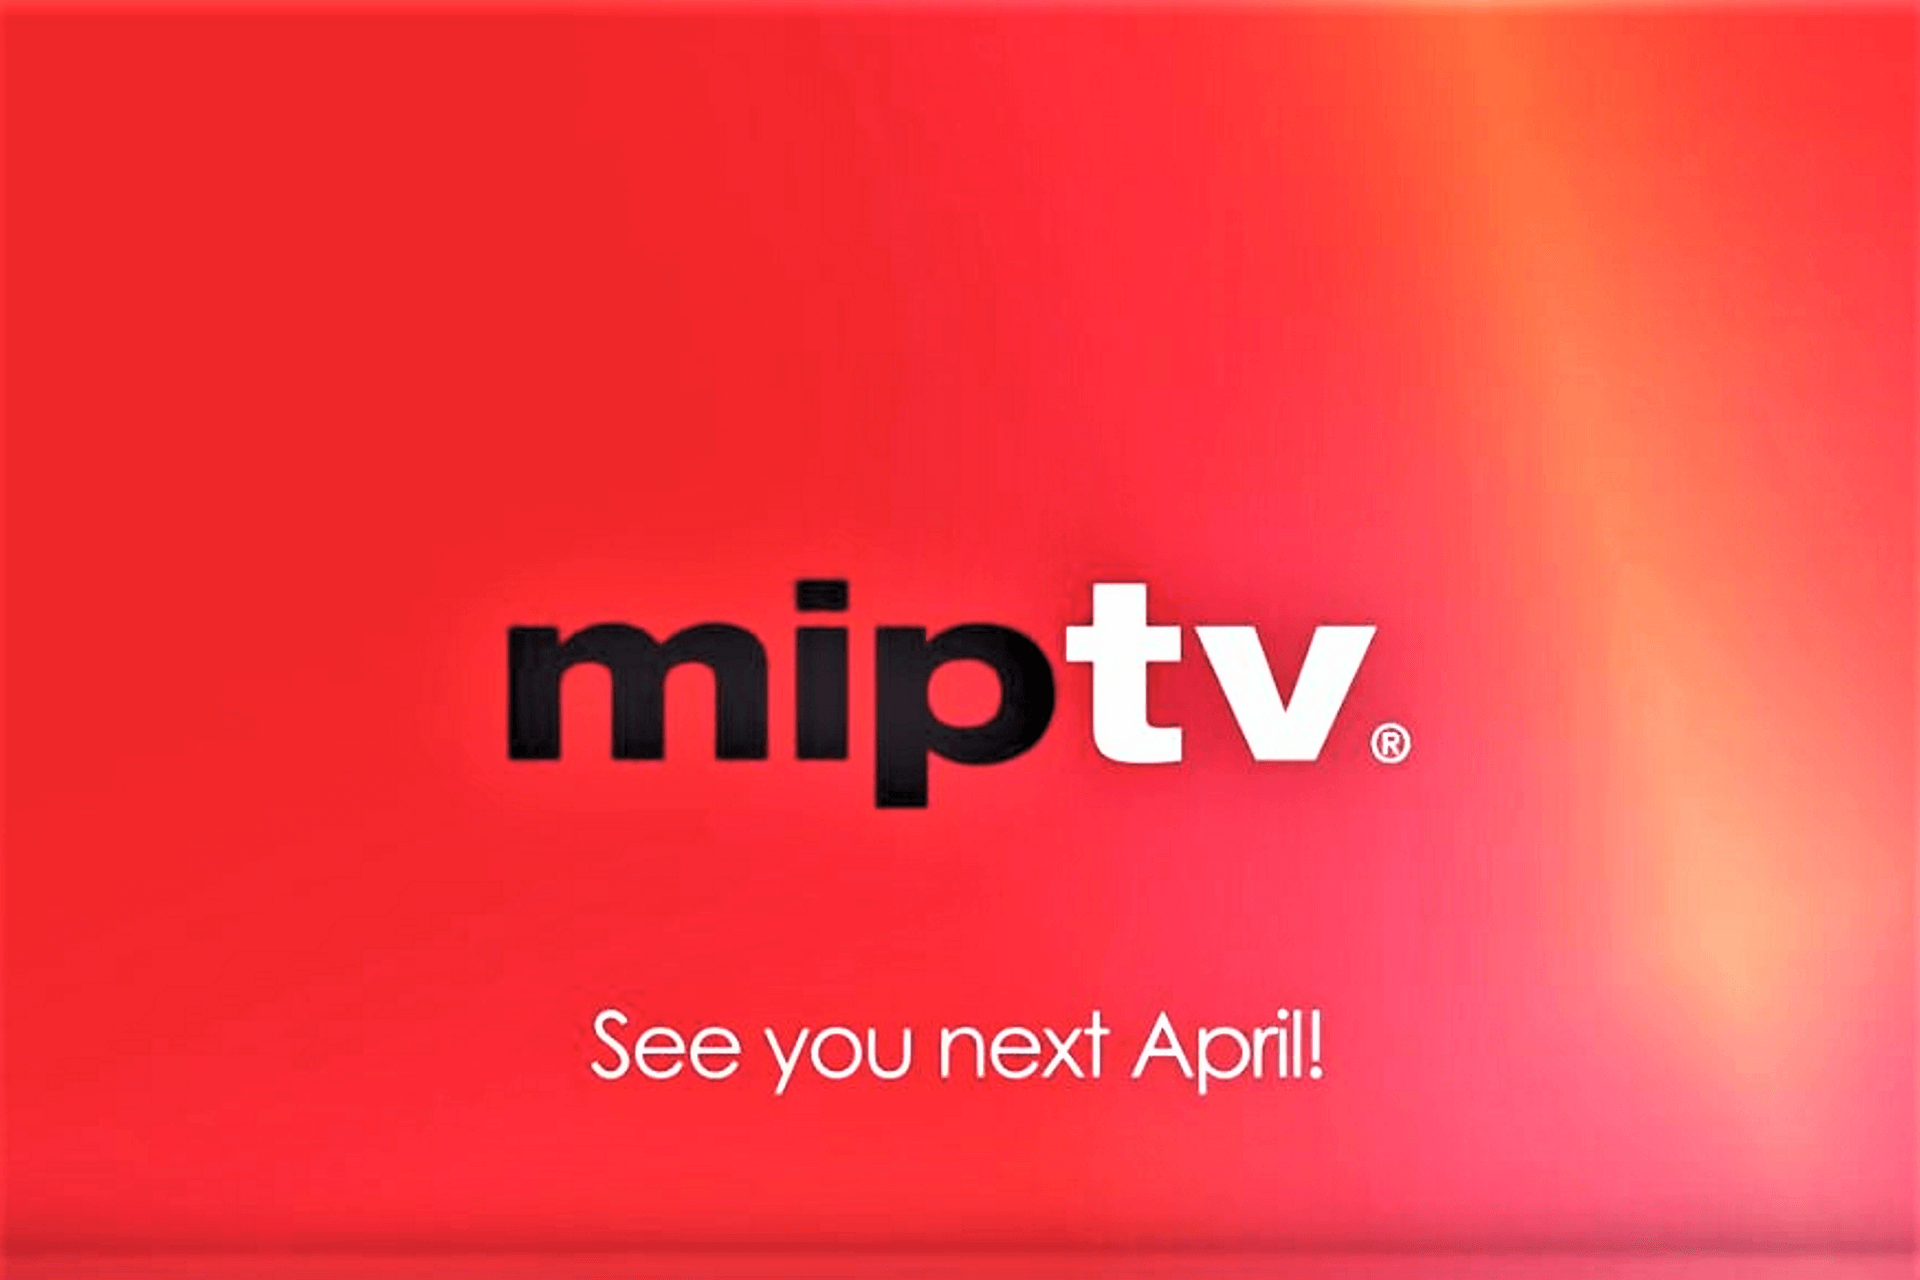 miptv avril 2019 cannes